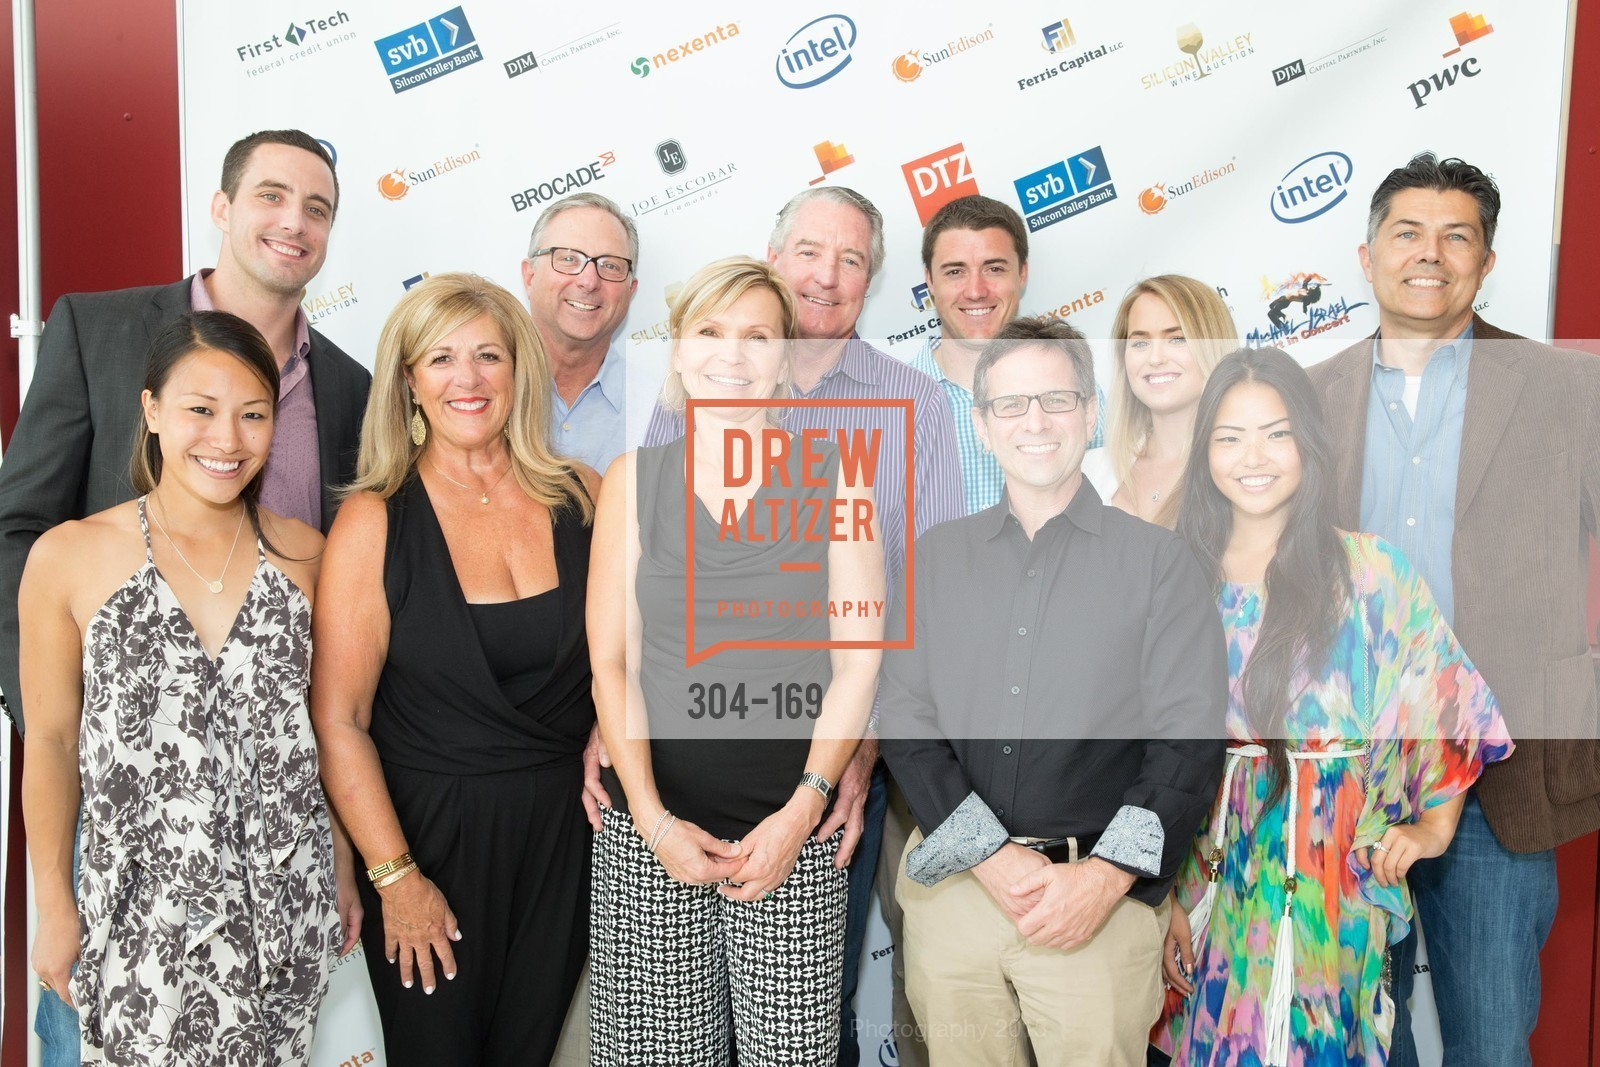 Jamie Yoo, Melinda Parkinson, Mark Parkinson, Liba Janicek, John Miller, Brad Lehman, Maura Cyrus, Marysol Yoo, Dennis Jackson, Silicon Valley Wine Auction Benefiting Silicon Valley Education Foundation, Levi's Stadium. 4900 Marie P. DeBartolo Way, June 19th, 2015,Drew Altizer, Drew Altizer Photography, full-service agency, private events, San Francisco photographer, photographer california